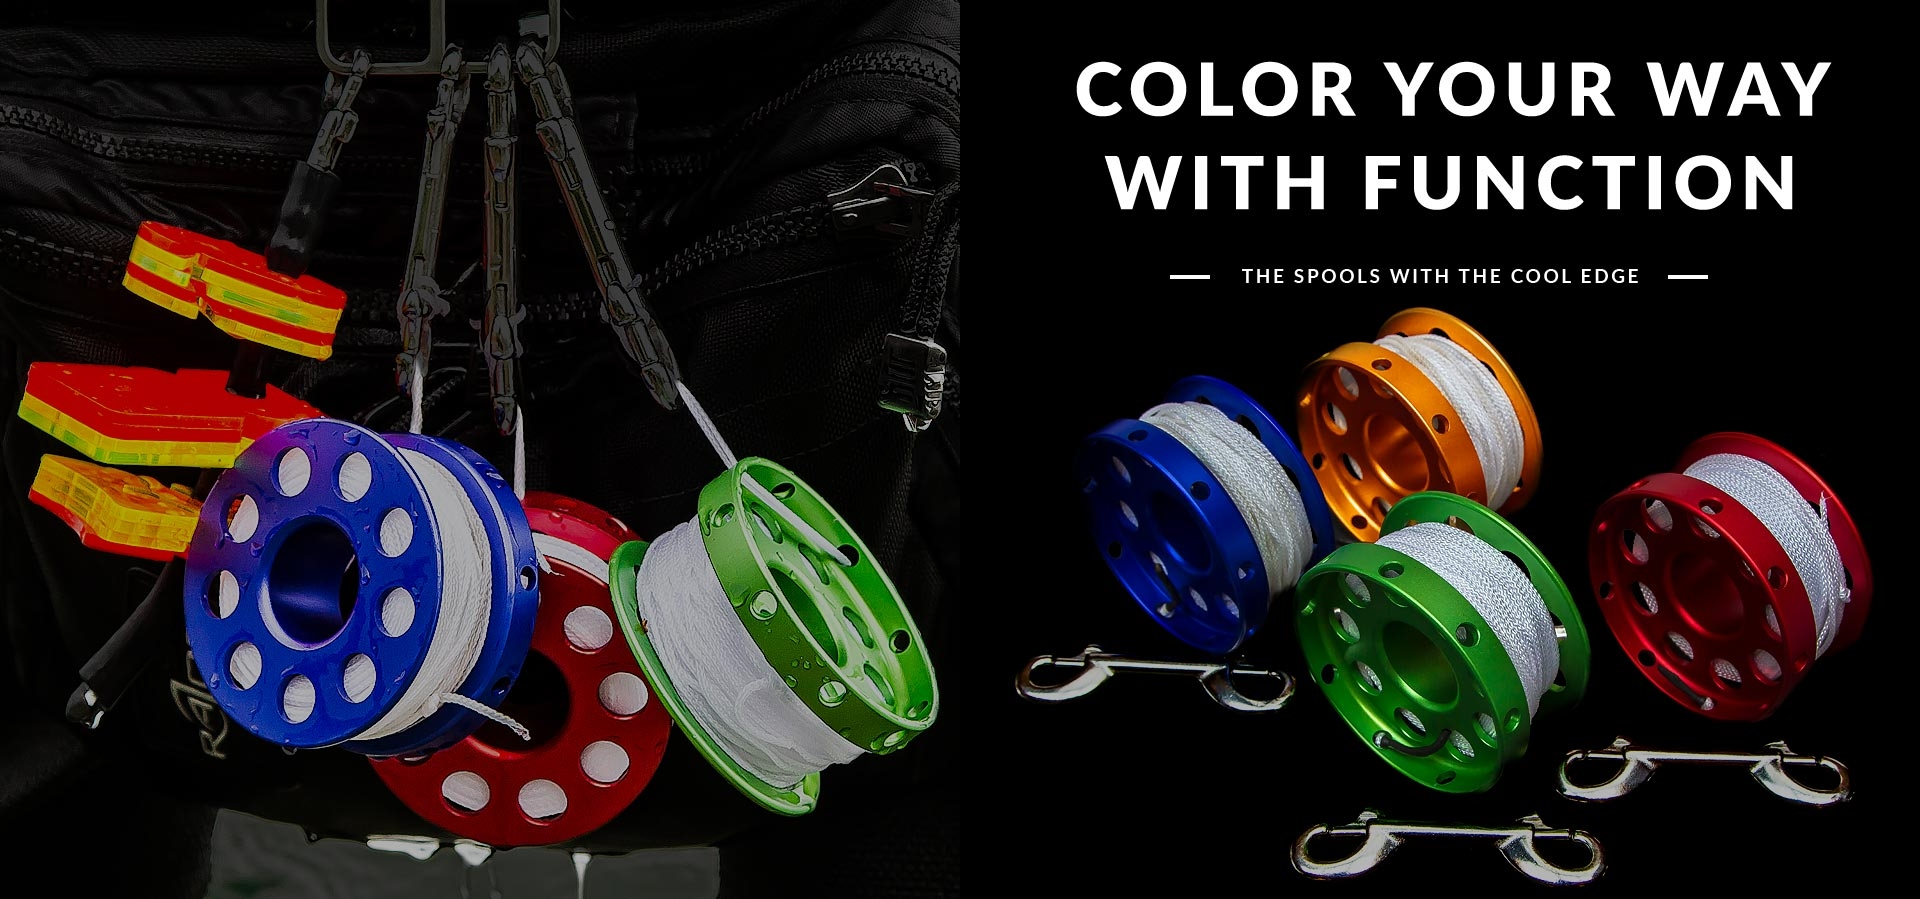 Color your way with function